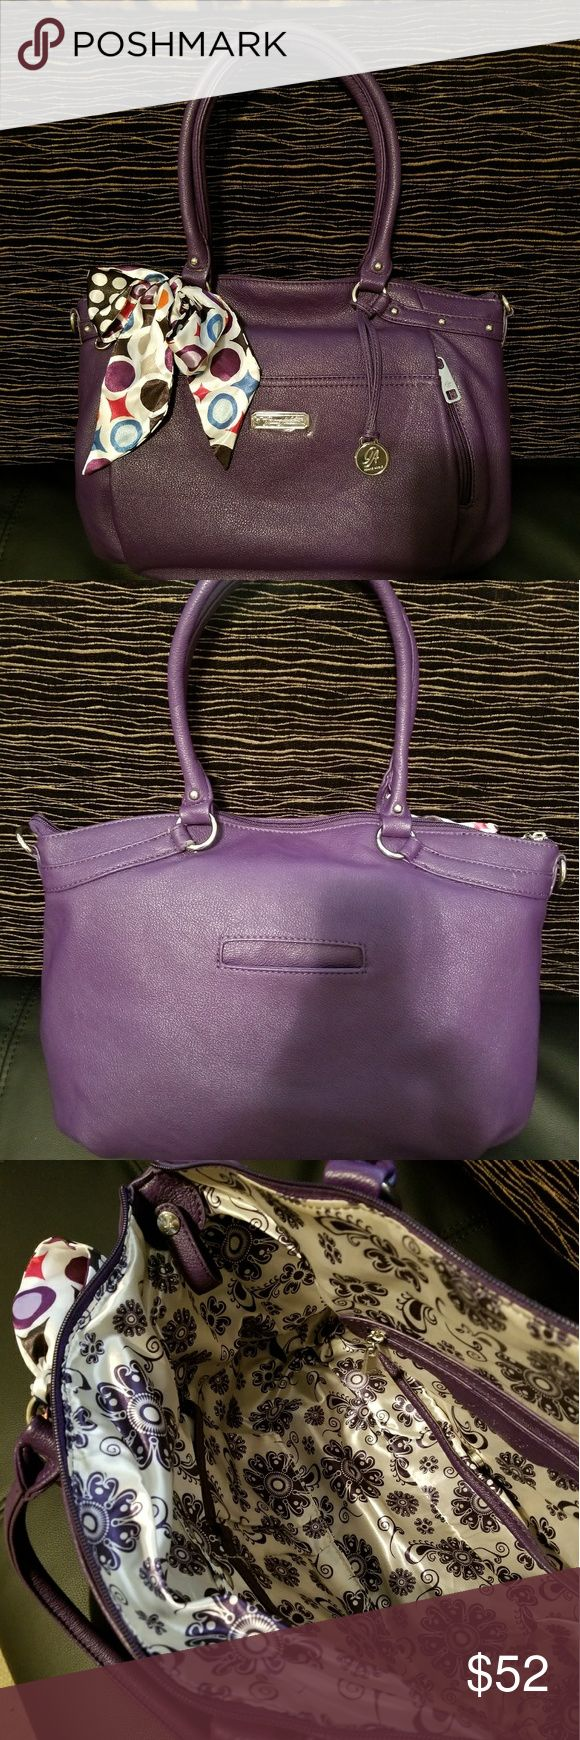 Grace Adele purse Awesome purple in color with a beautiful inner satin lining. There are countless compartments both inside and out! There is a pretty decorative scarf tied to one handle. This purse is brand new, and never used, although there is a small defect as shown in the photo. Grace Adele Bags